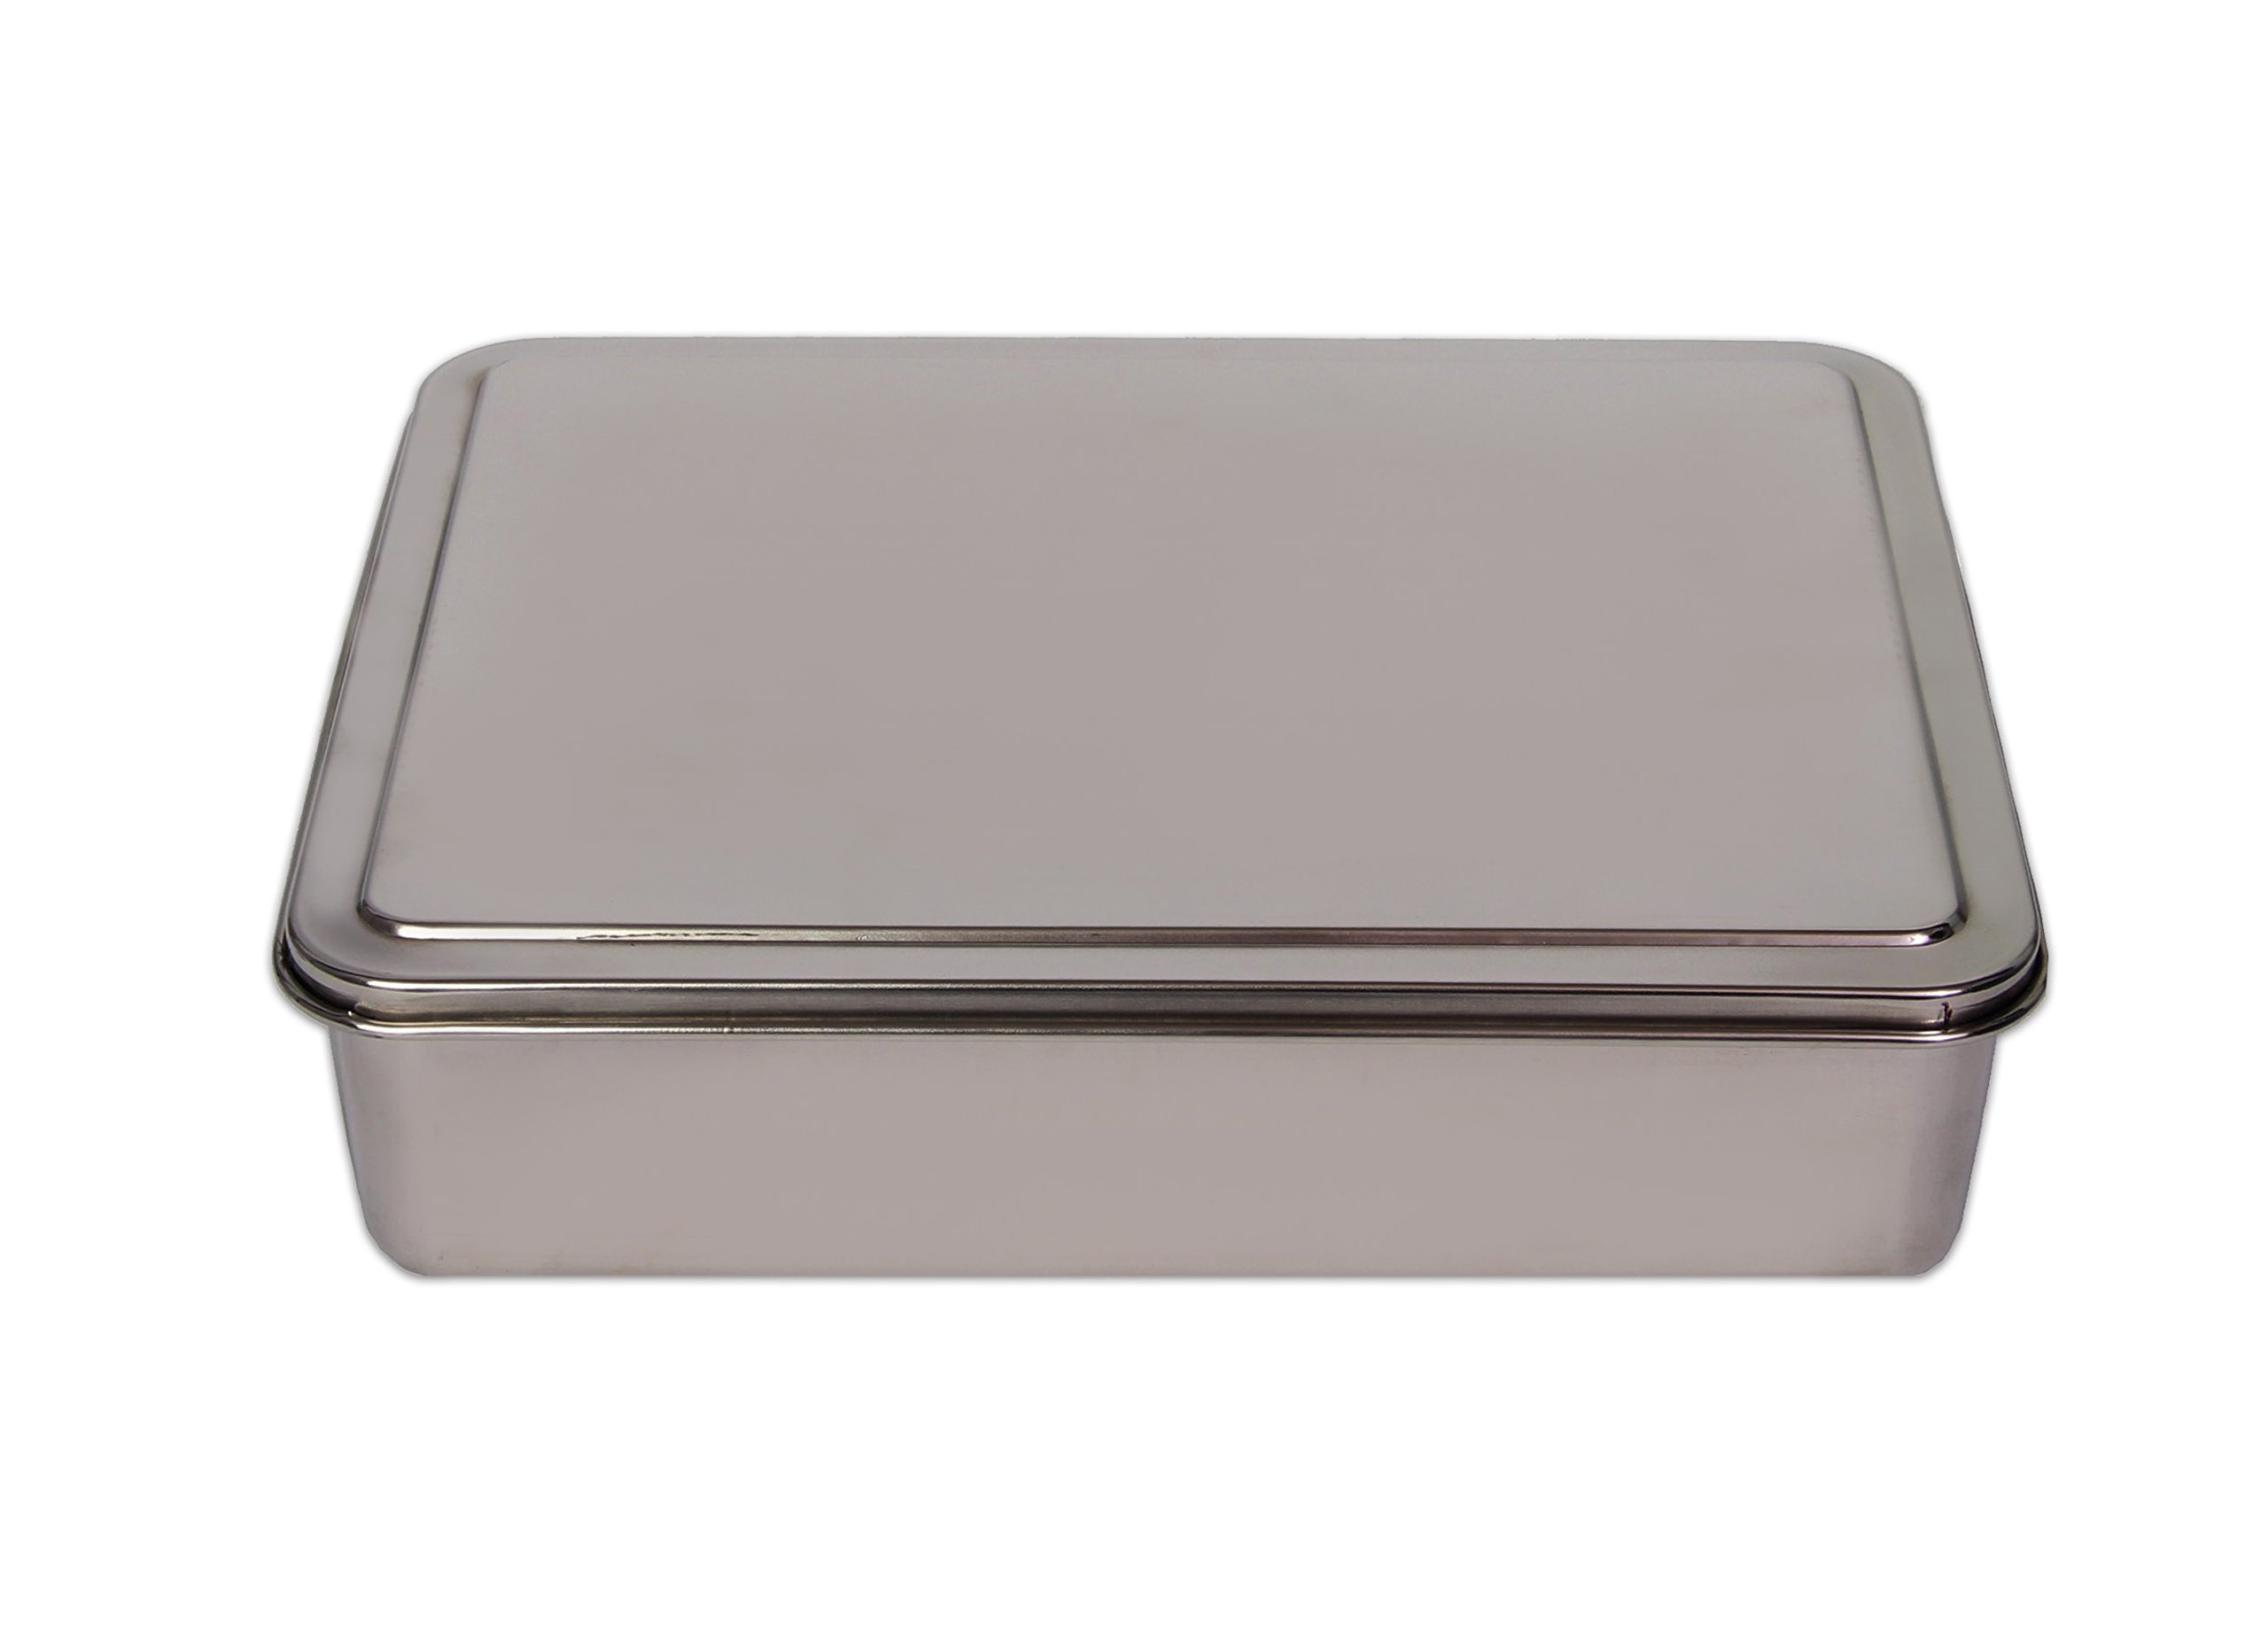 YBM HOME Stainless Steel Covered Cake Pan, Silver (Small-2401) by YBM HOME